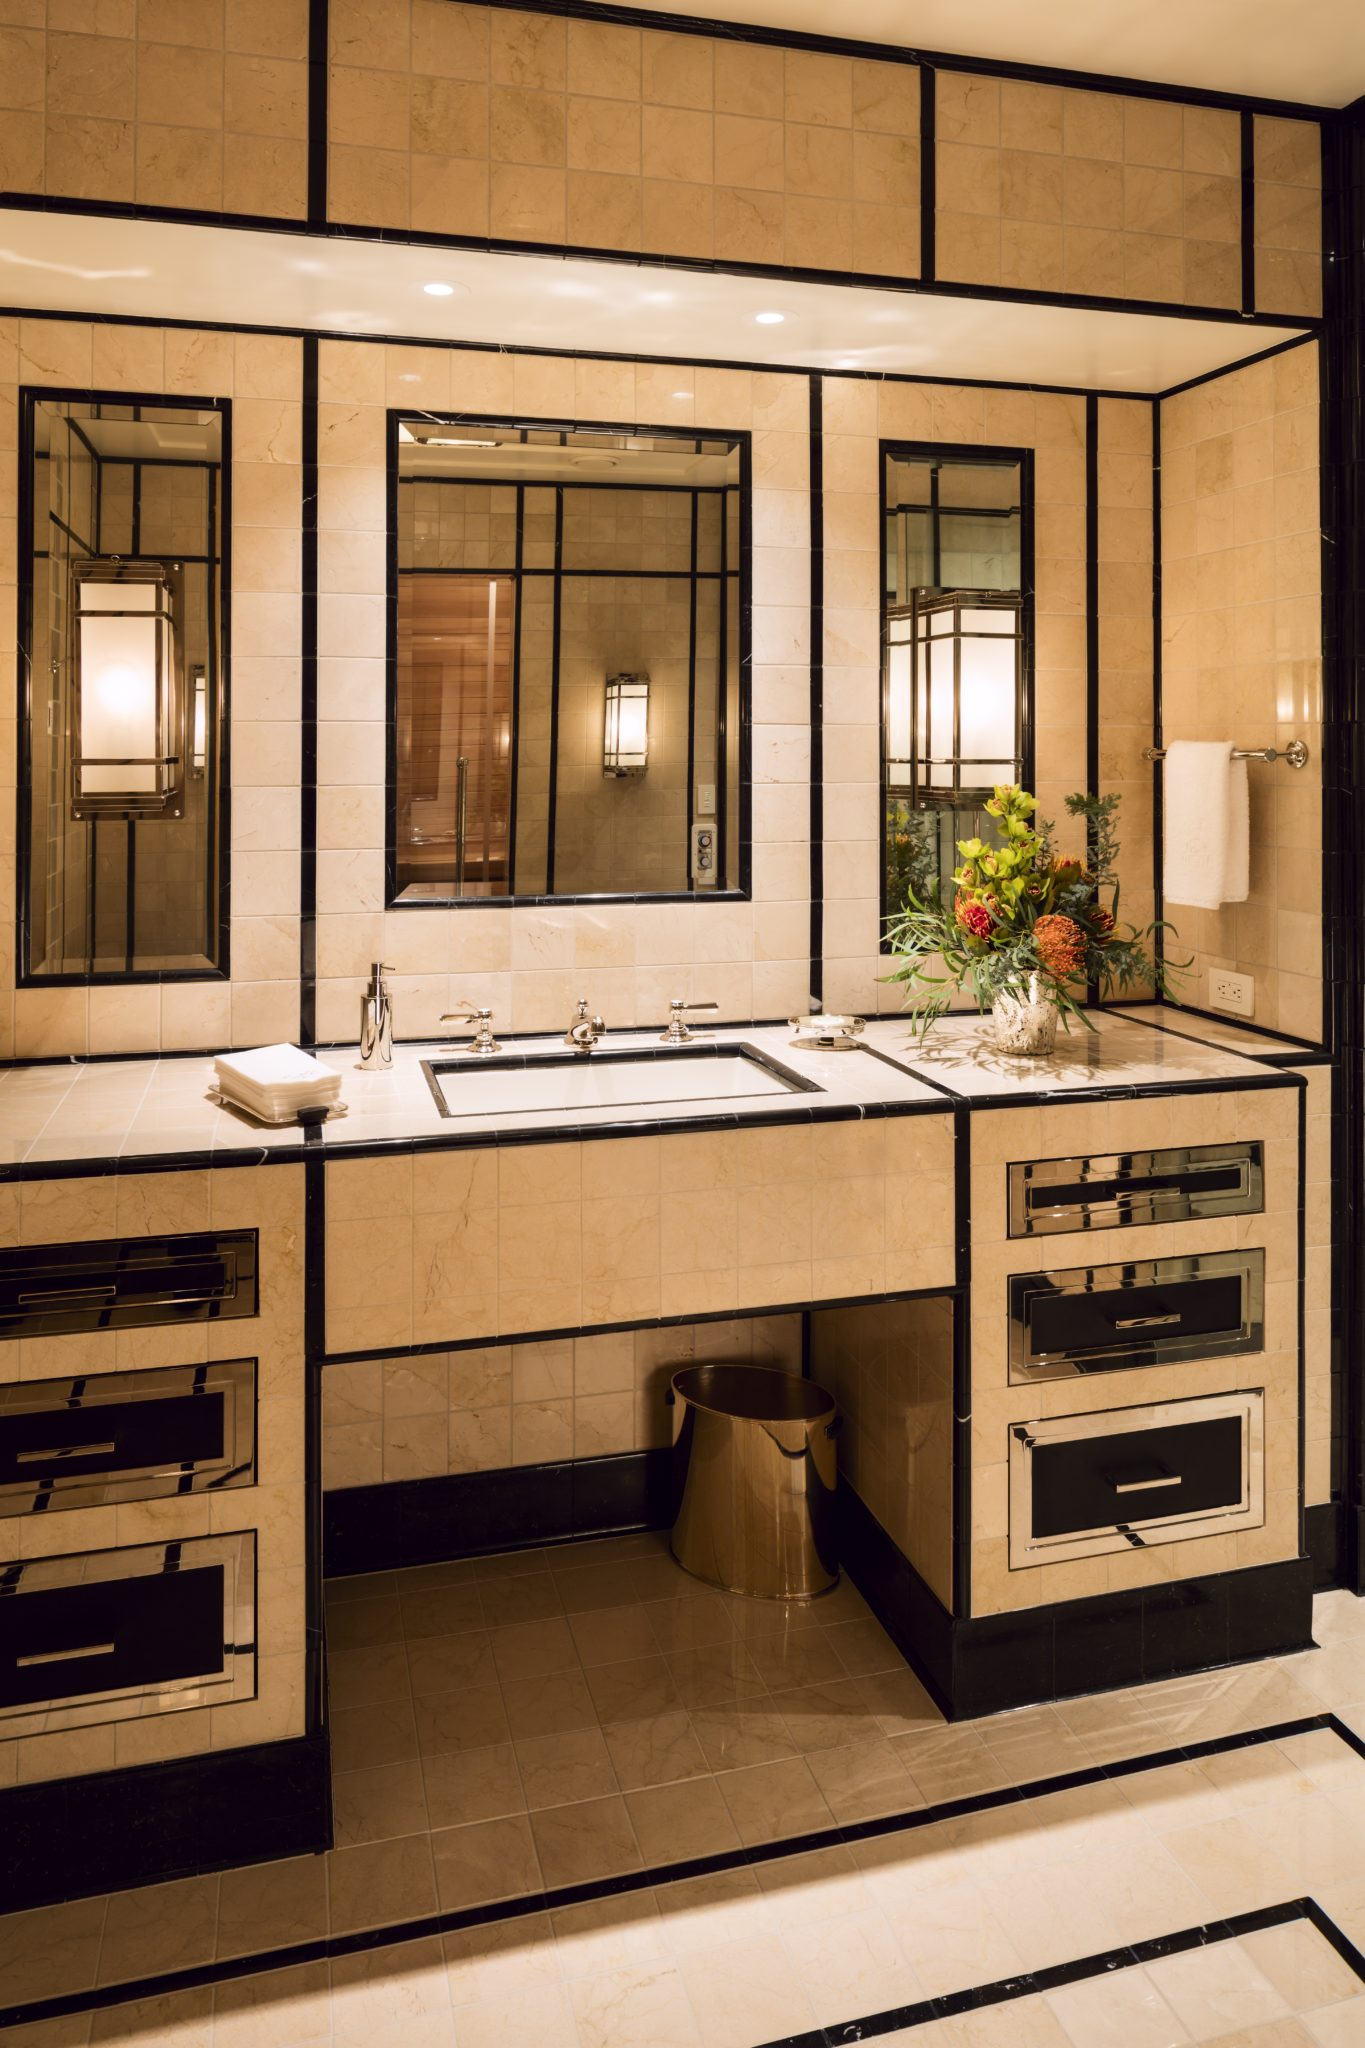 All cabinetry is magnificently inlaid. By Wade Weissmann Architecture Inc.